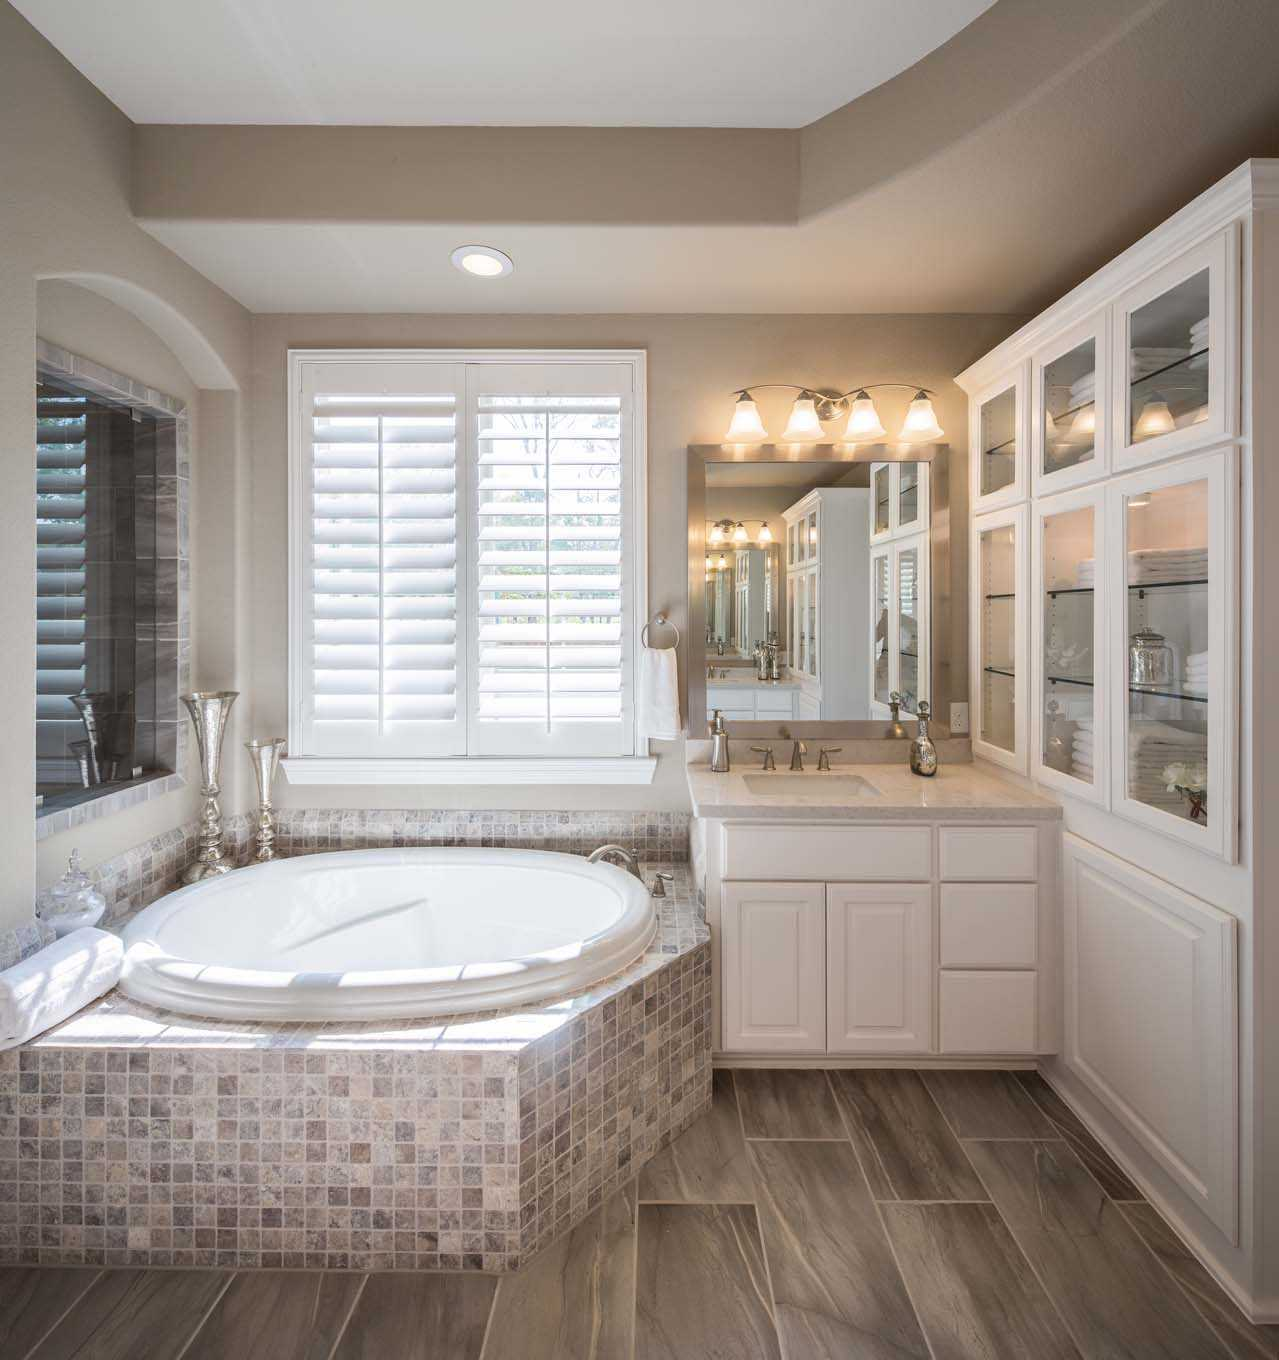 Bathroom featured in the Plan 297 By Highland Homes in Dallas, TX